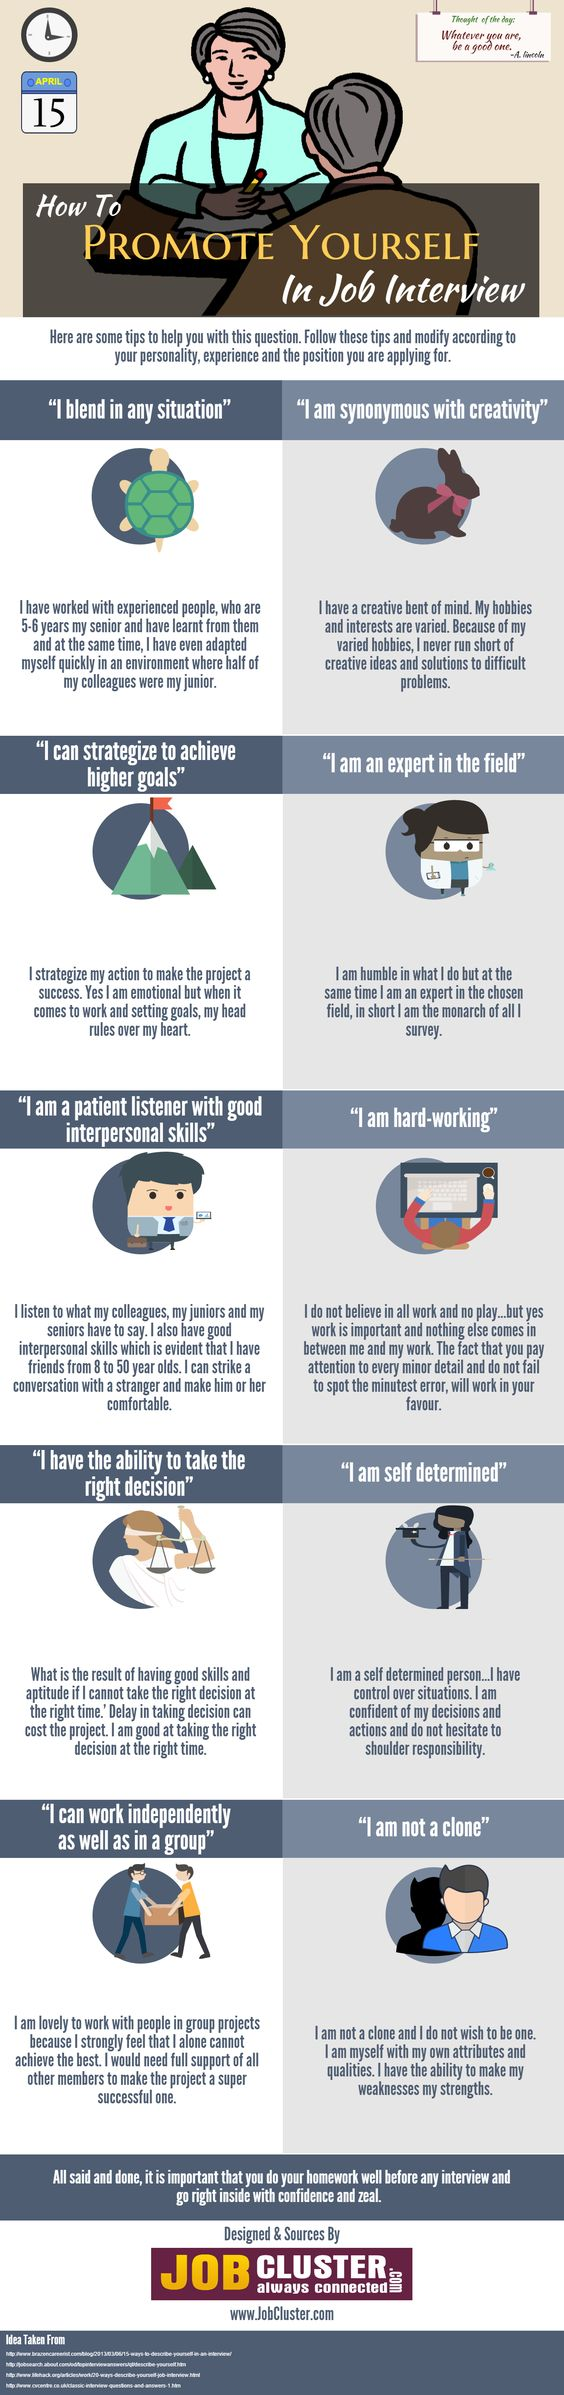 self promotion in job interview infographic job interviews